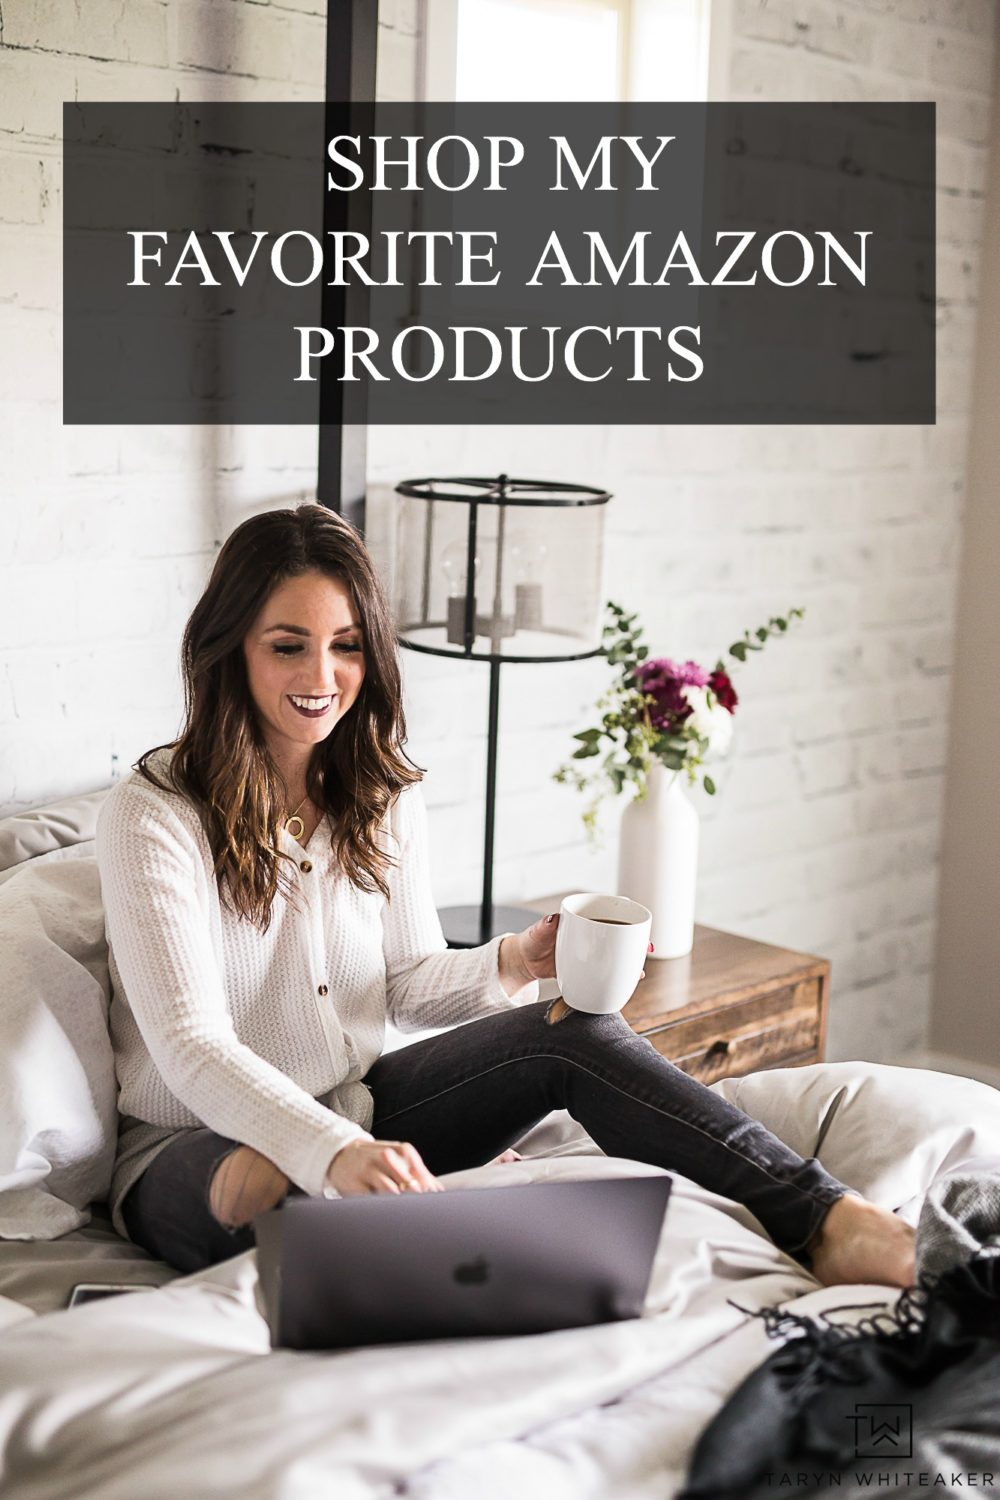 Shop my favorite home decor and fashion products found on Amazon!